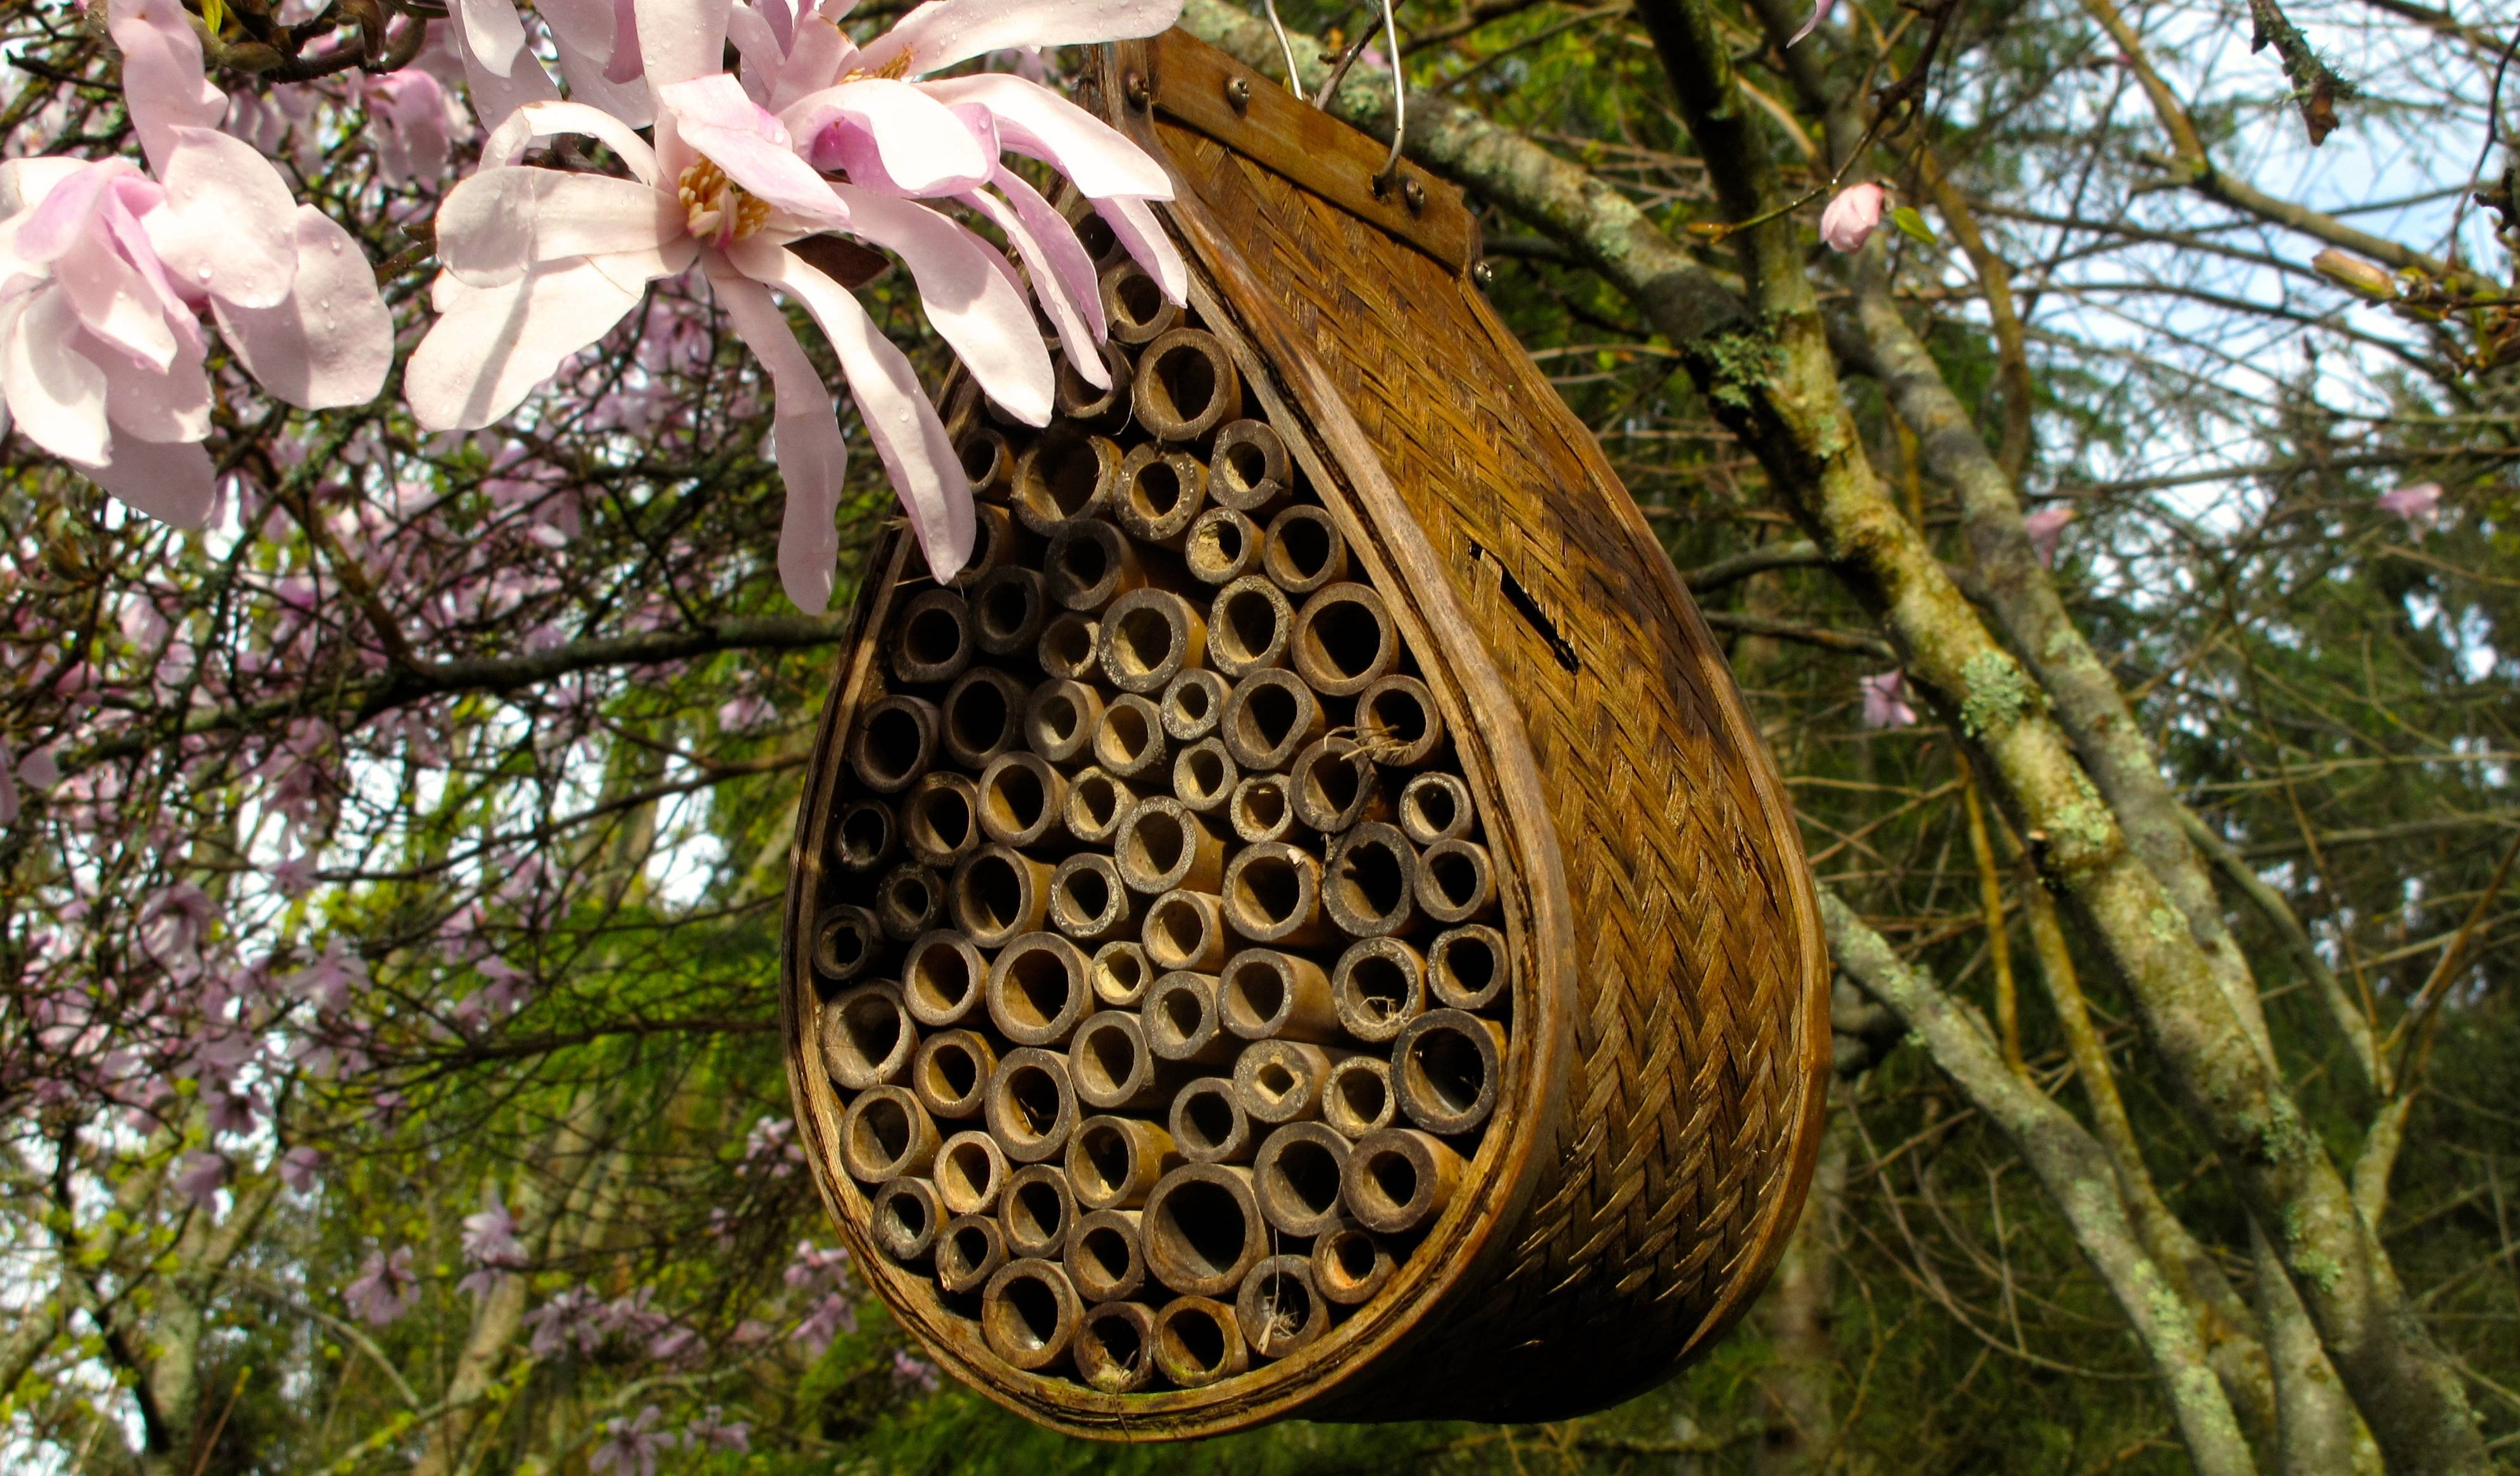 To create an inviting habitat for leaf cutter and mason bees, add nesting sites to your yard to maximize the production of native bees.